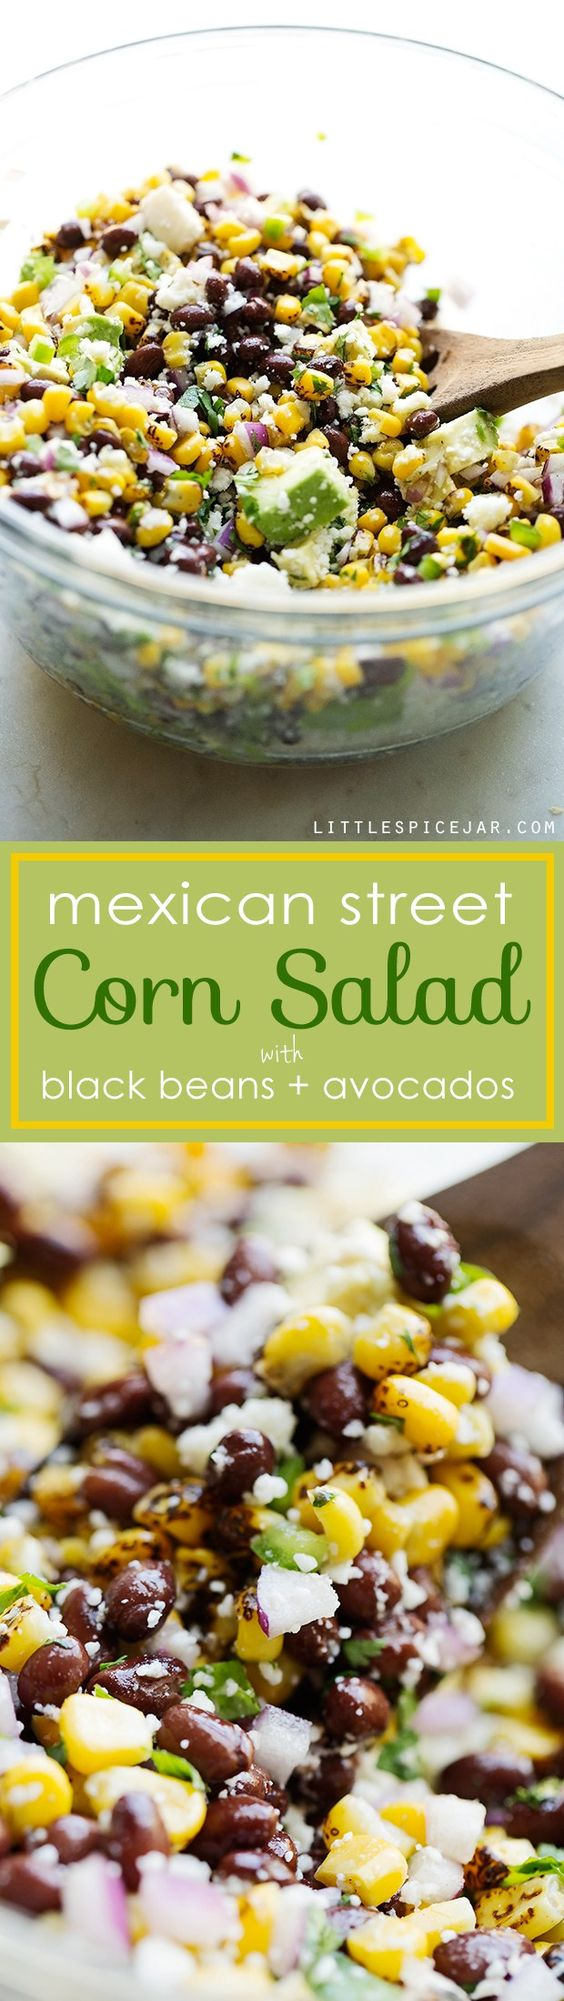 Mexican Street Corn Salad - The perfect summer corn salad with lots of fresh ingredients tossed in a light homemade dressing!